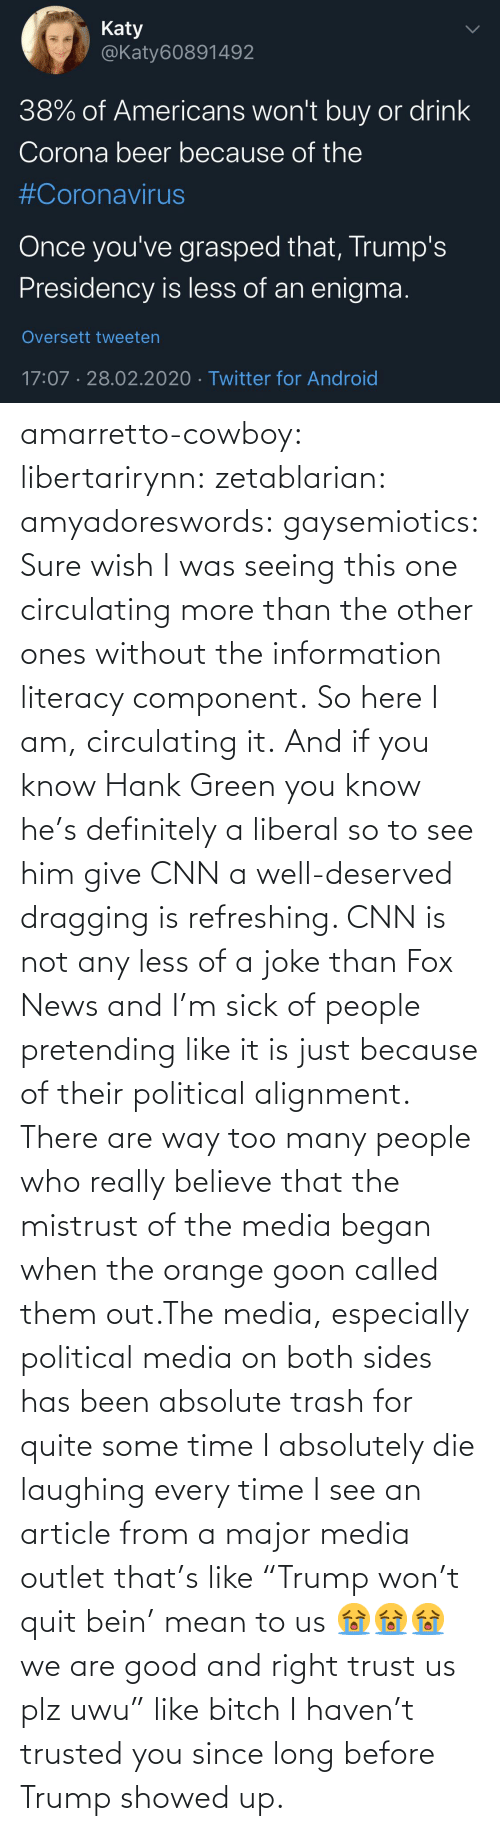 "Sides: amarretto-cowboy:  libertarirynn:  zetablarian:  amyadoreswords:   gaysemiotics:       Sure wish I was seeing this one circulating more than the other ones without the information literacy component. So here I am, circulating it.    And if you know Hank Green you know he's definitely a liberal so to see him give CNN a well-deserved dragging is refreshing. CNN is not any less of a joke than Fox News and I'm sick of people pretending like it is just because of their political alignment.   There are way too many people who really believe that the mistrust of the media began when the orange goon called them out.The media, especially political media on both sides has been absolute trash for quite some time   I absolutely die laughing every time I see an article from a major media outlet that's like ""Trump won't quit bein' mean to us 😭😭😭 we are good and right trust us plz uwu"" like bitch I haven't trusted you since long before Trump showed up."